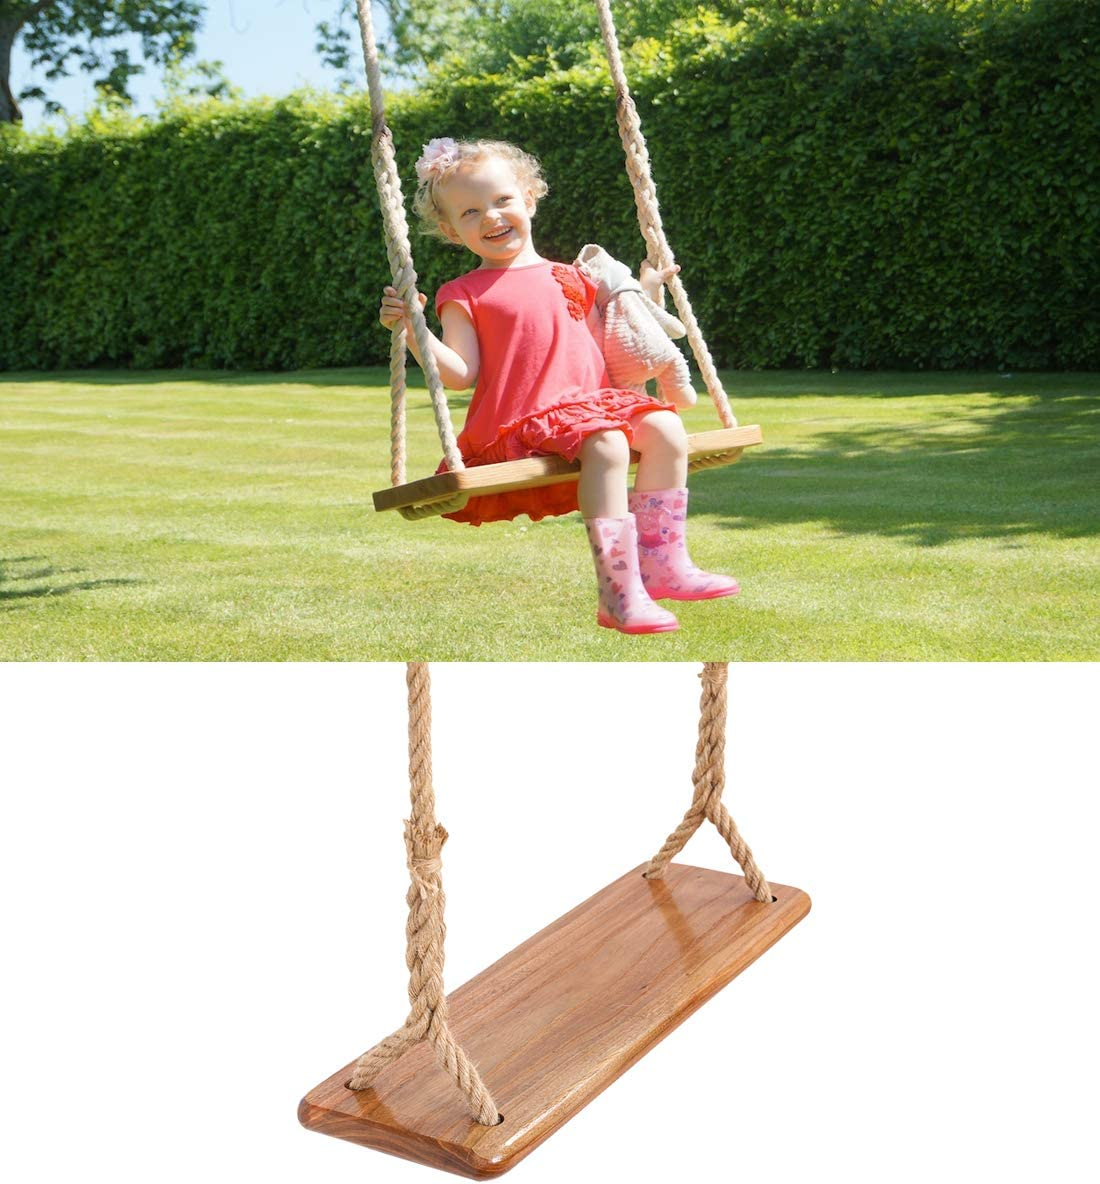 Tree Swing Seat Hanging Wooden Tree Swings for Children Kids Garden,Yard, Indoor, Elm Wood Durable Can Withstand 440IB,Kide Swings(15.76.3IN)